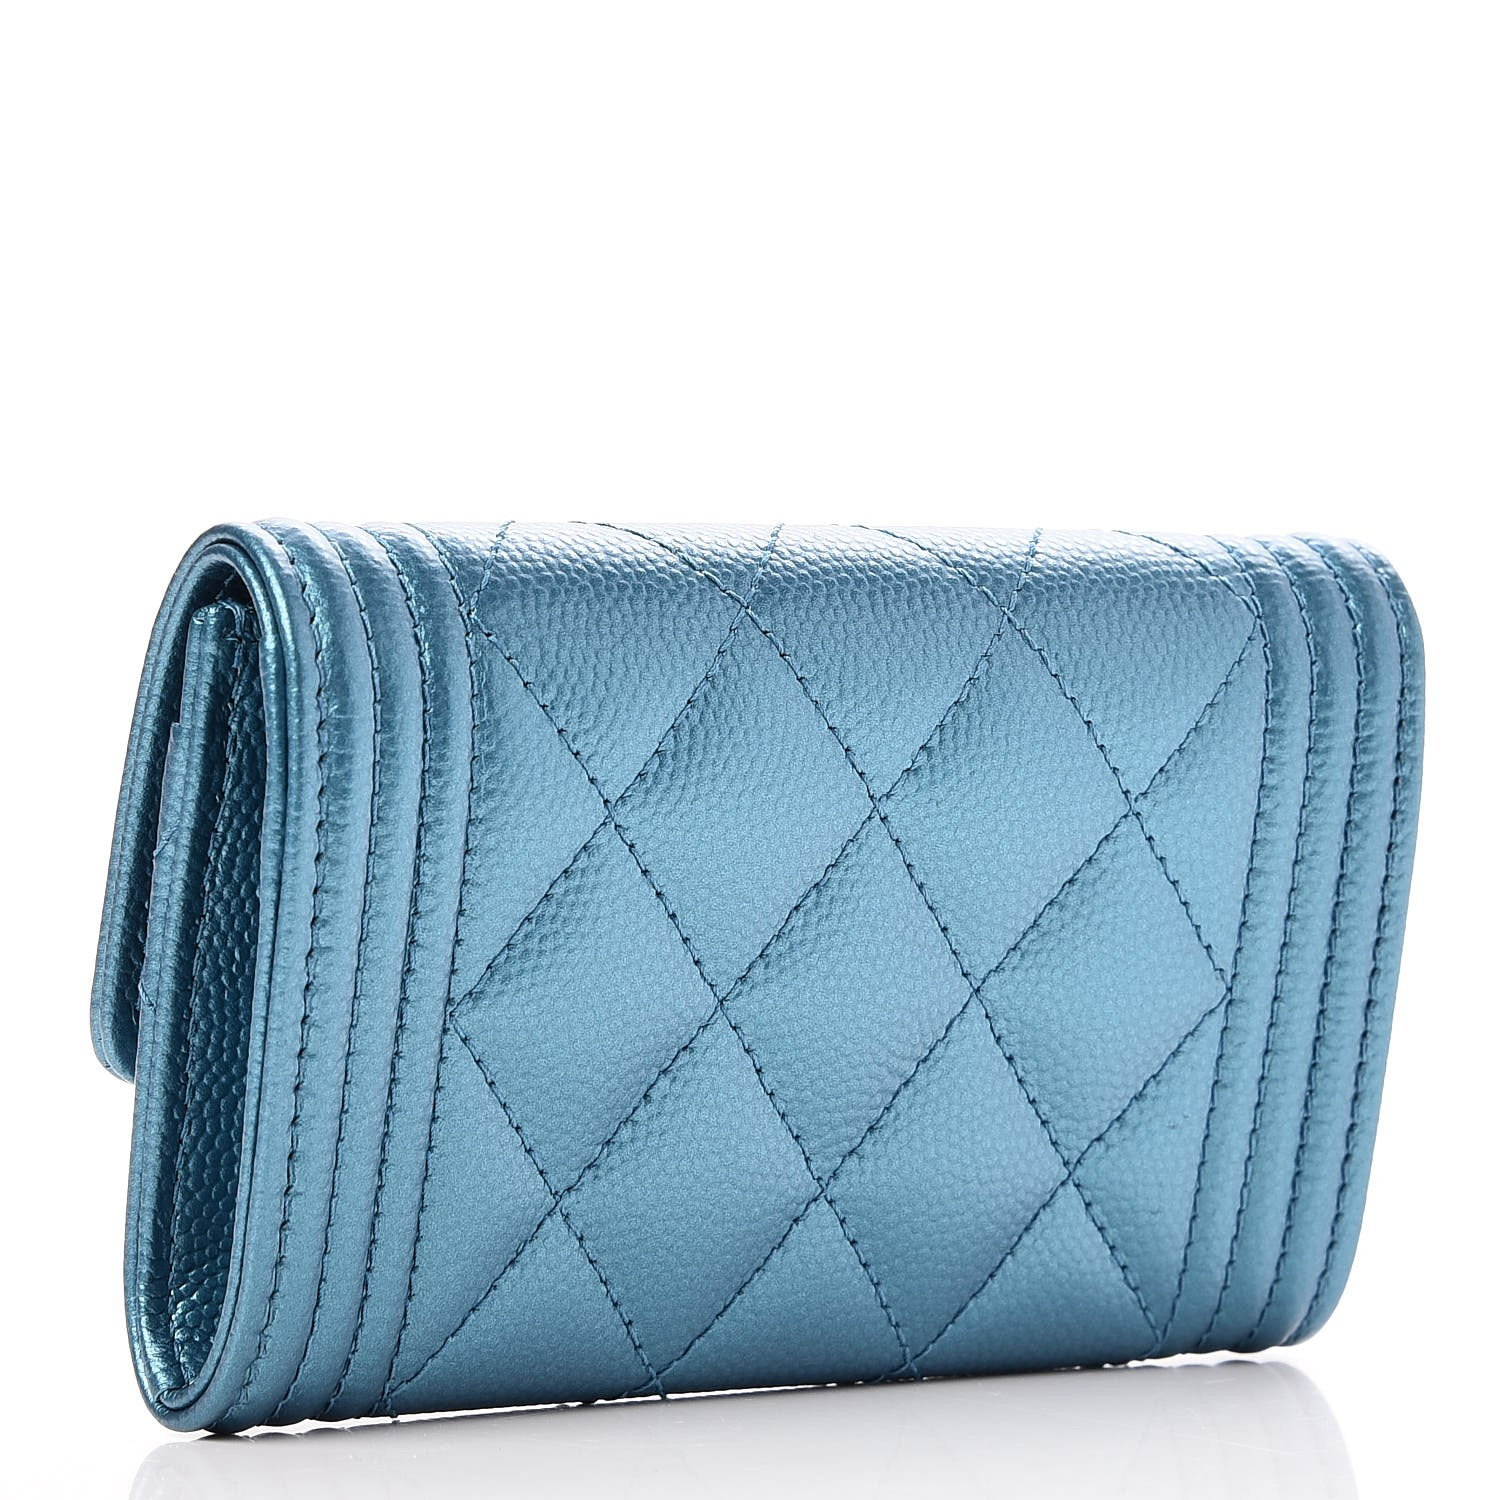 1512dfa2dbc9 CHANEL Metallic Caviar Quilted Boy Card Holder Wallet Turquoise 238439